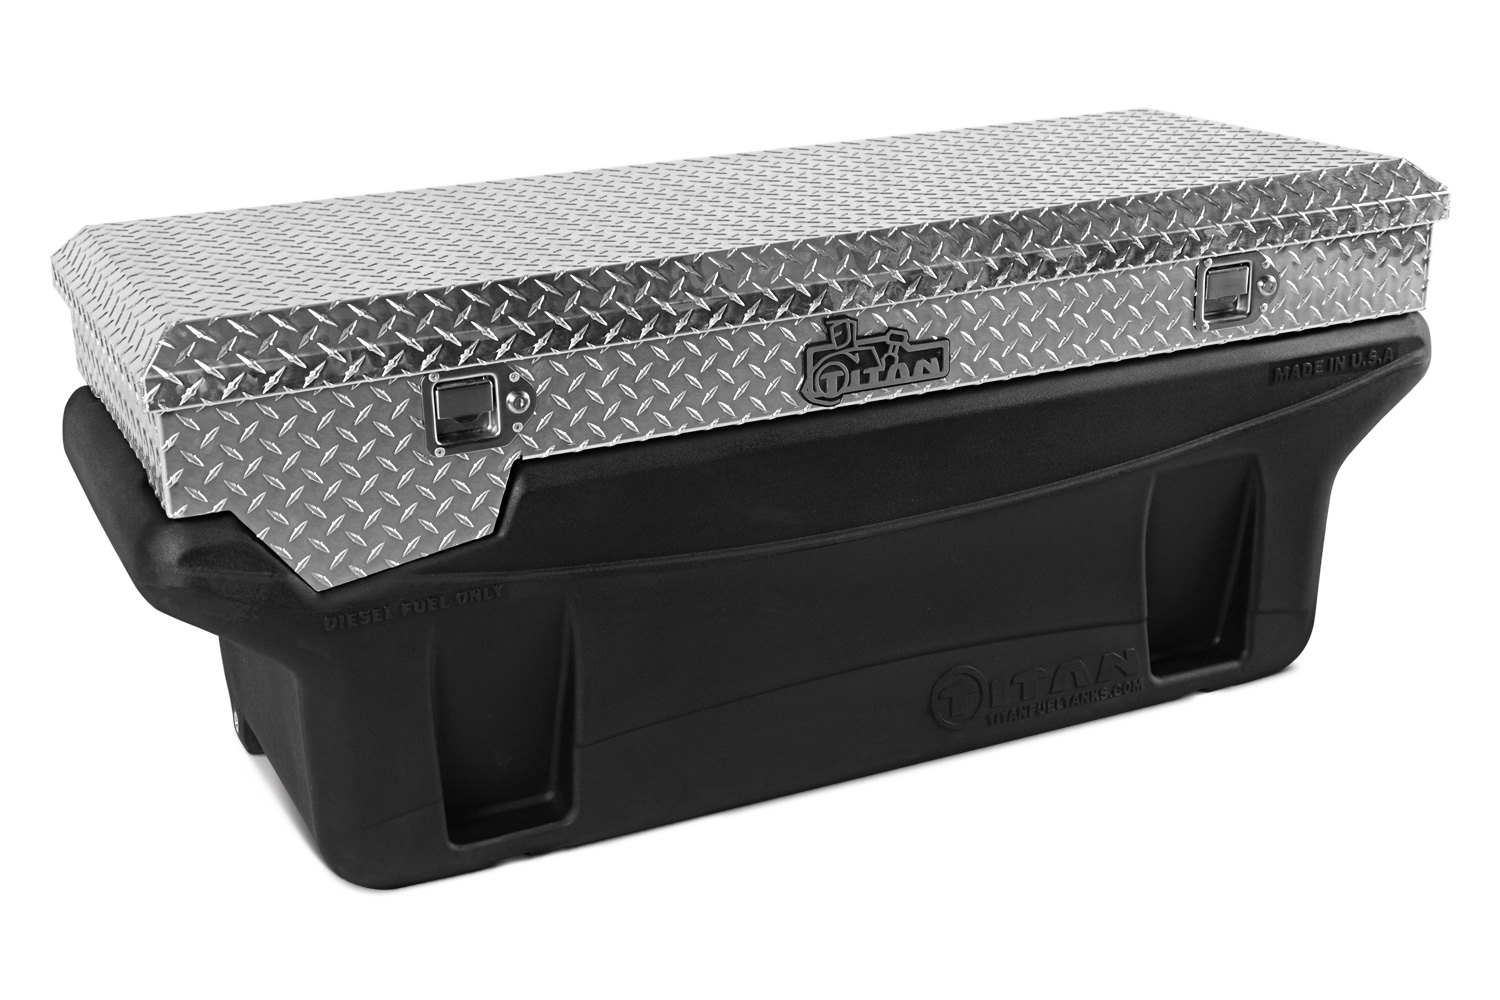 Titan in bed fuel tank with toolbox